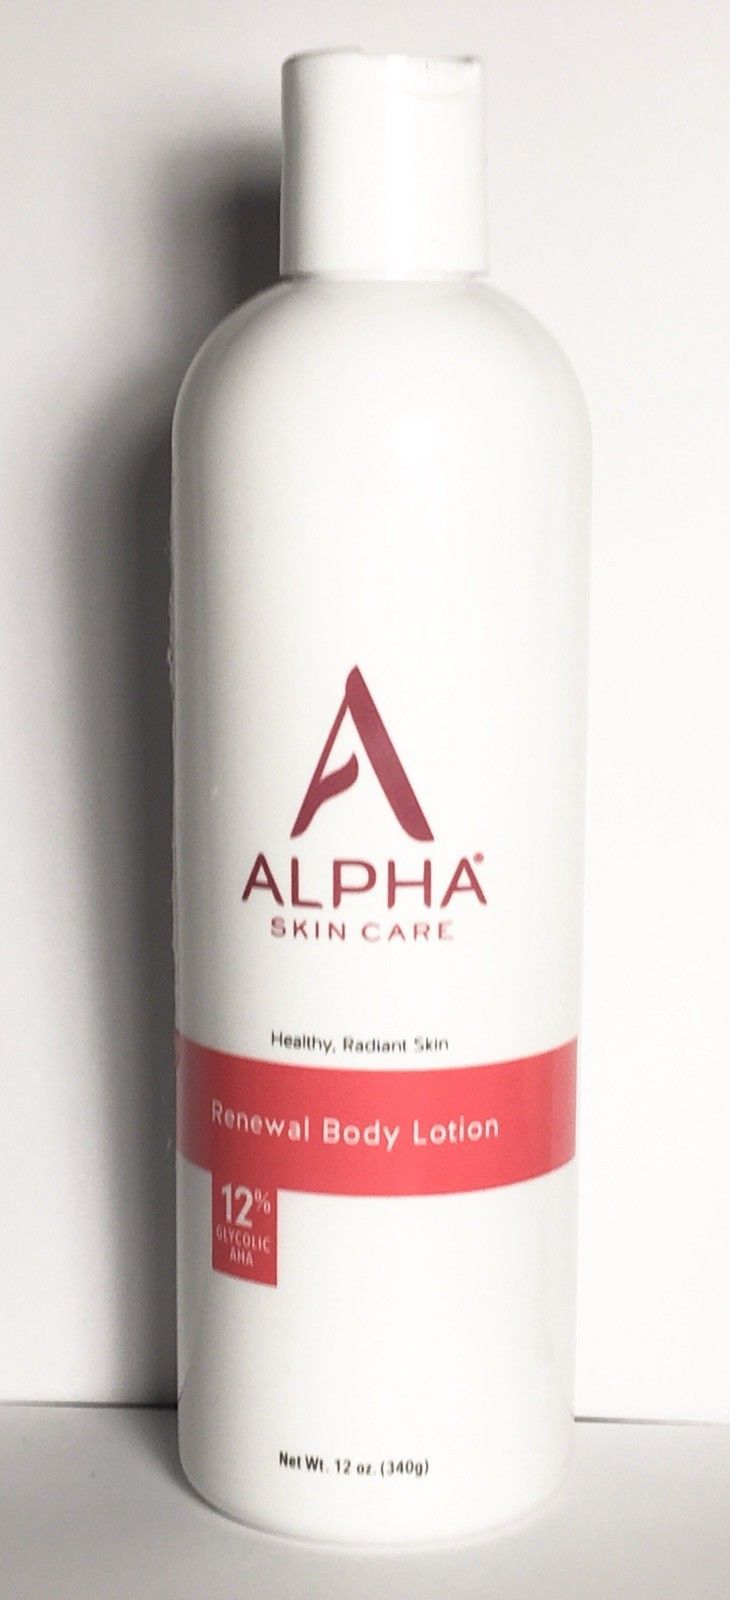 Alpha Skin Care Renewal Body Lotion 12 Glycolic Ahasupports Healthy Radiance Skin Care Body Lotion Lotion